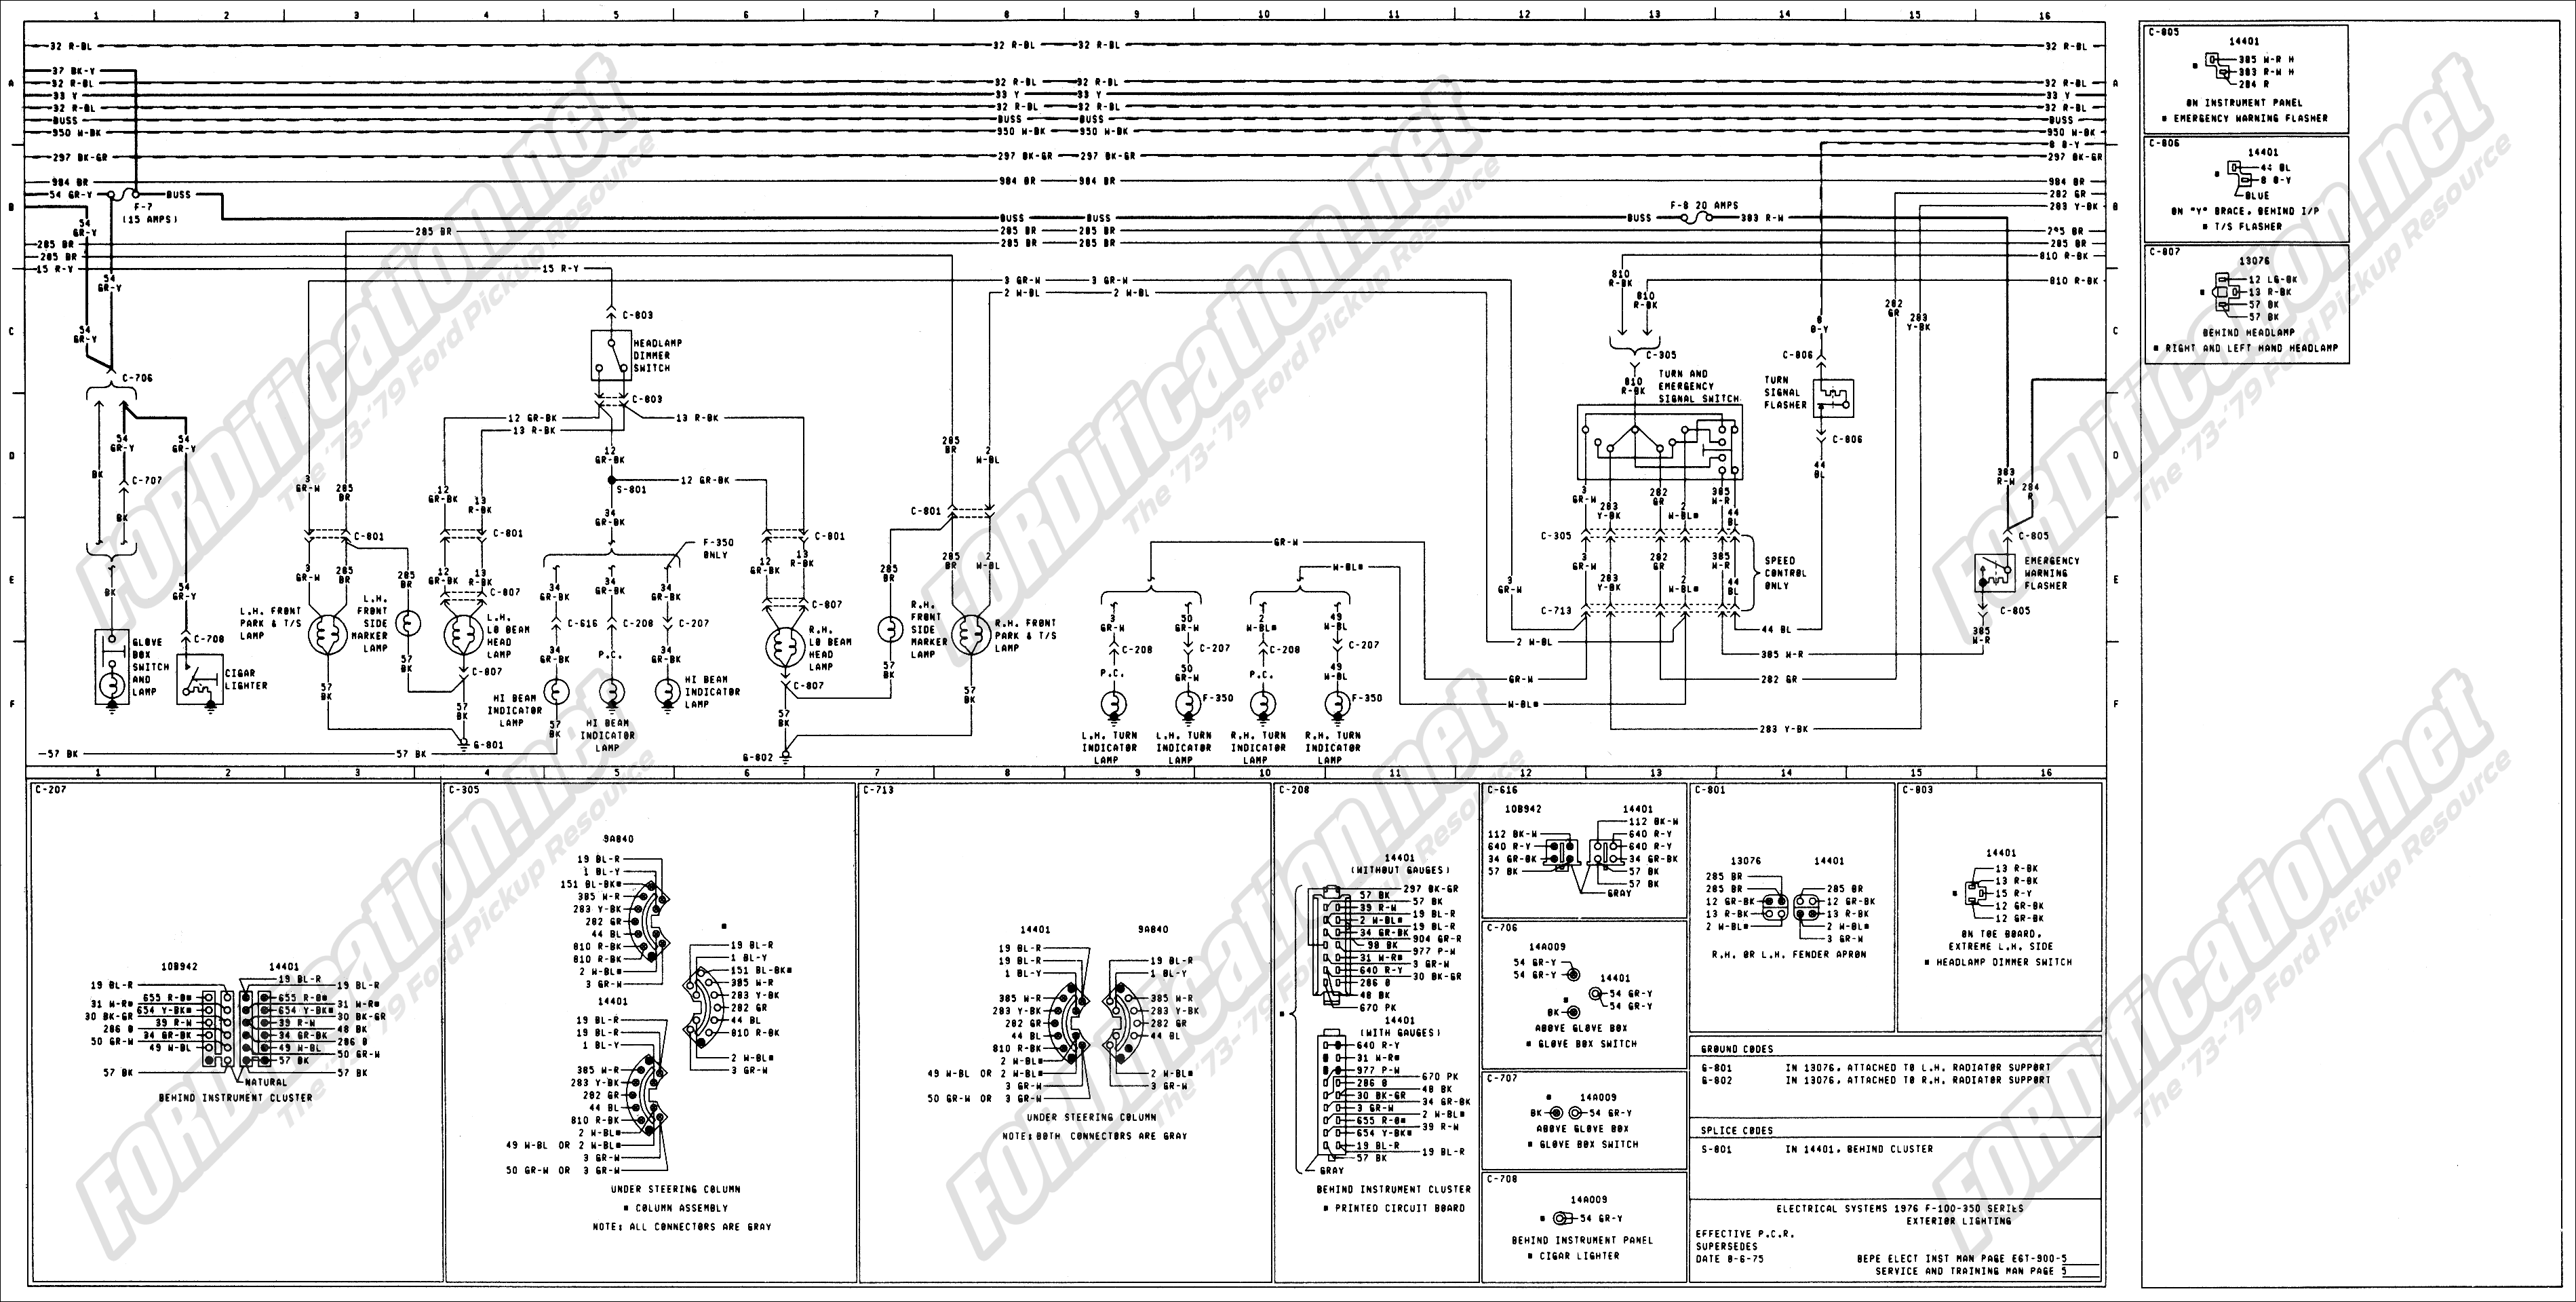 Fuse Box Diagram 1978 Ford F250 Wiring 1986 Mustang 1973 1979 Truck Diagrams Schematics Fordification Net Rh Bronco Of Rear Window